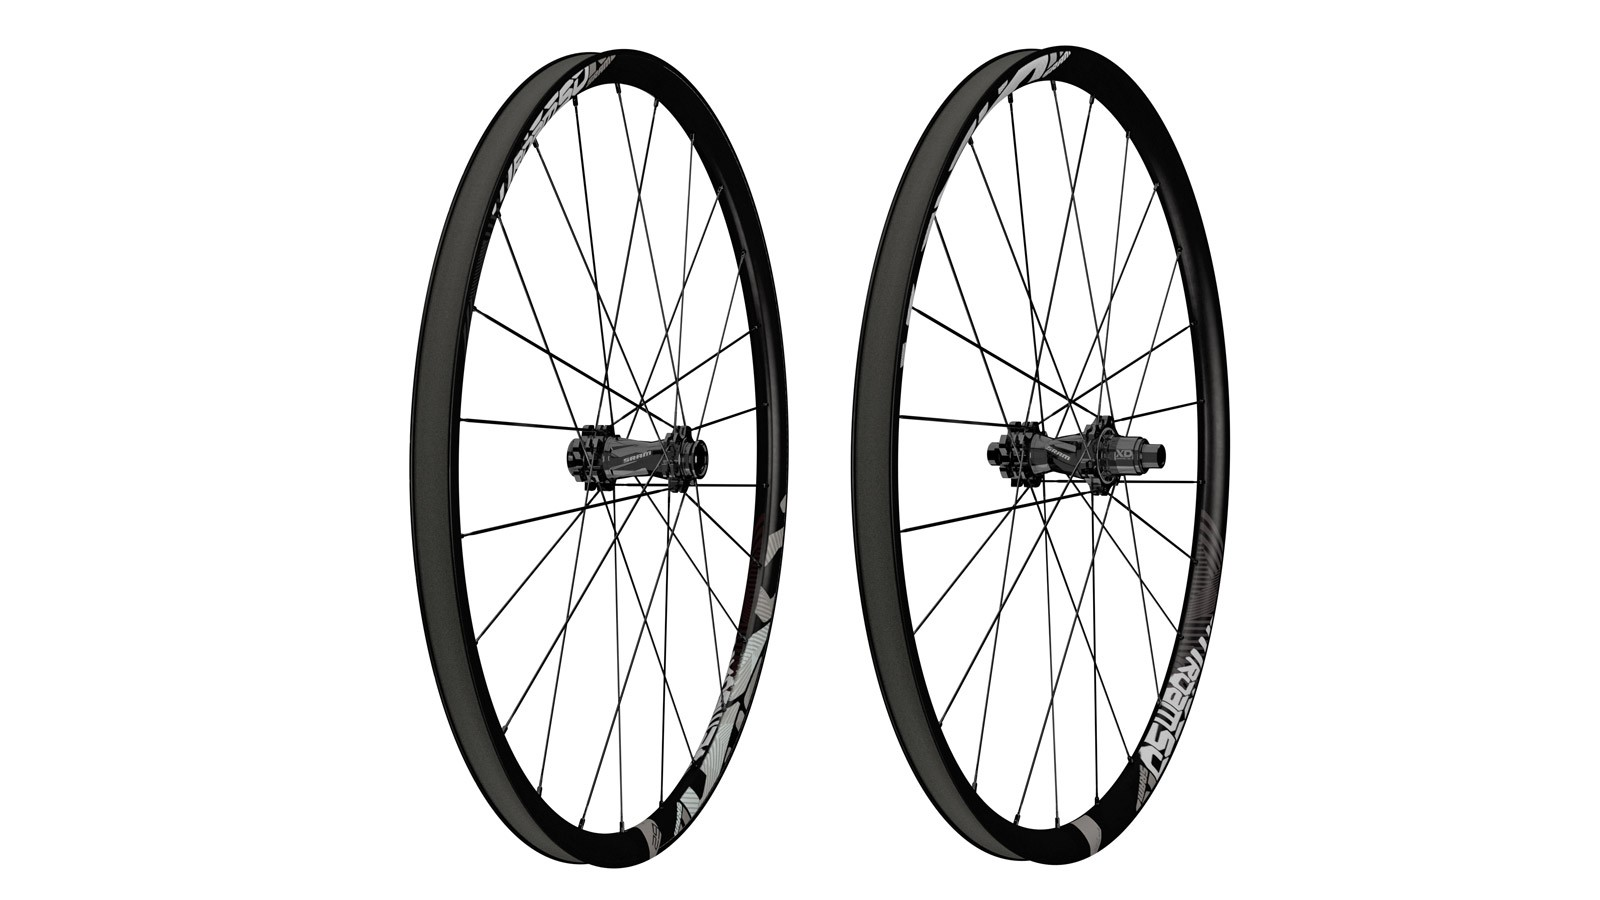 SRAM's new Roam 50 29er carbon wheels are aimed at trail riders